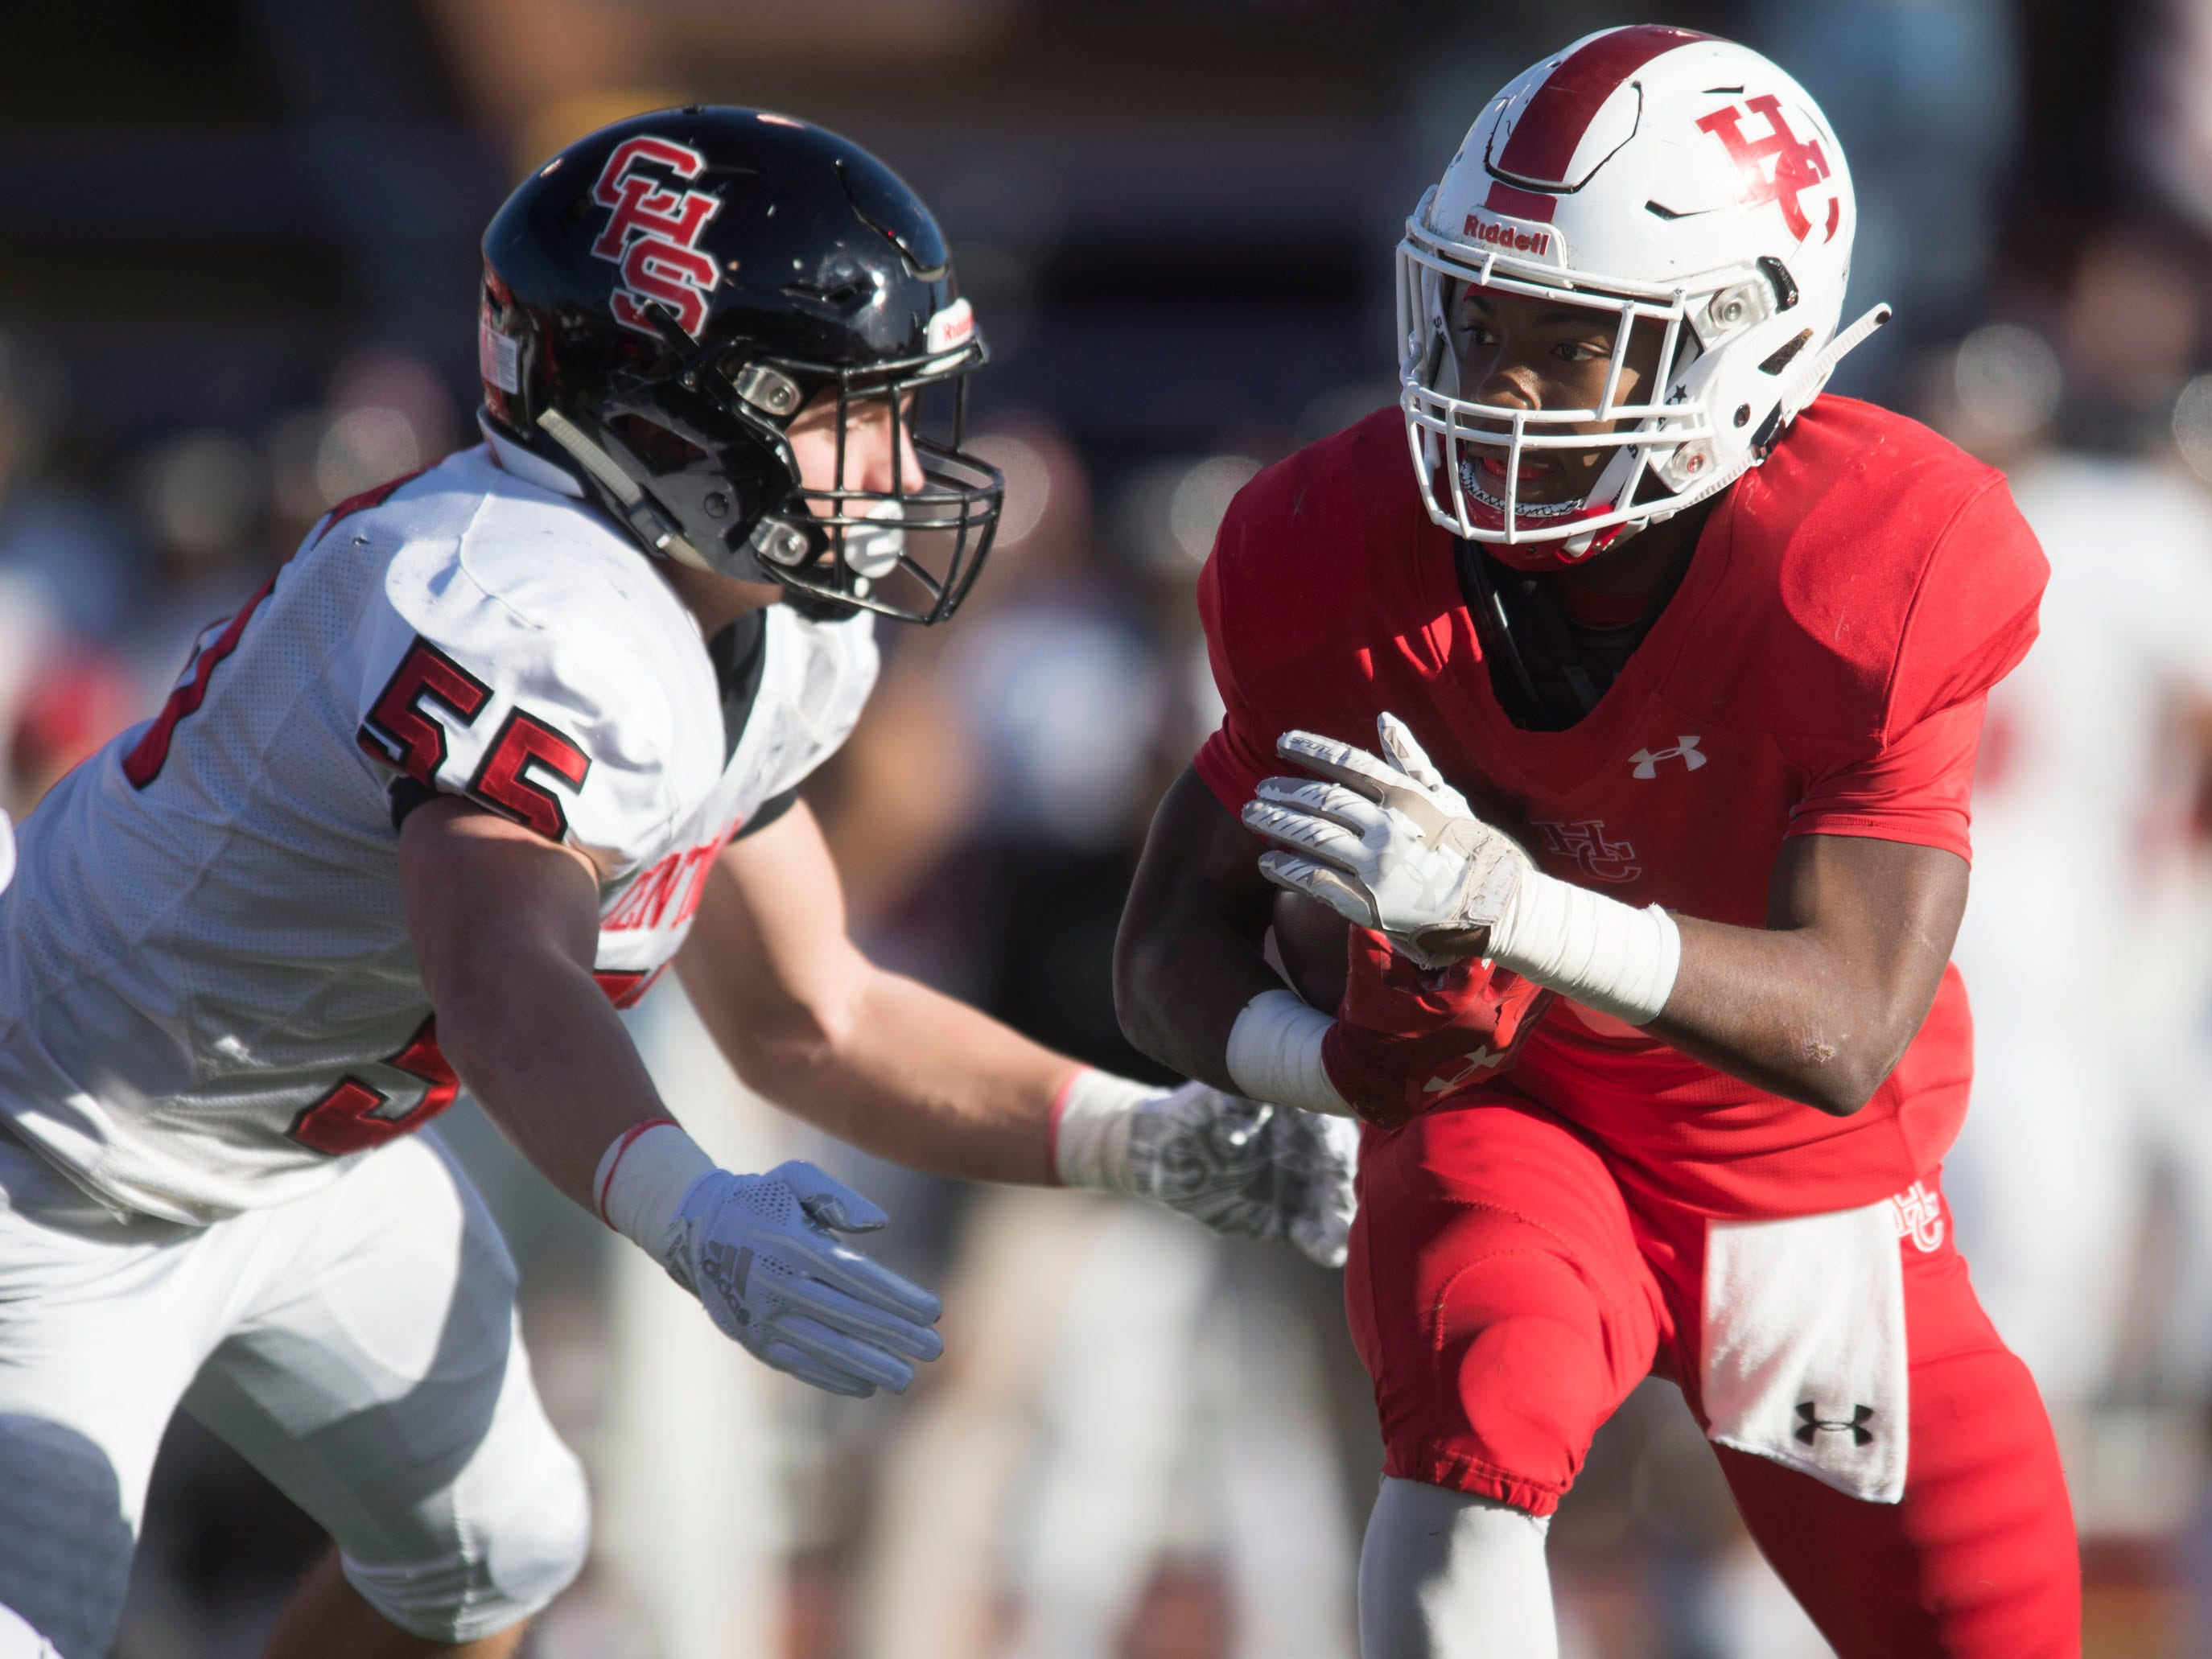 Henry County's Amarion Manzi (6) runs for yards while approached by Knoxville Central's Tyler Bost (55) in the Class 5A BlueCross Bowl at Tucker Stadium on Sunday, December 2, 2018.